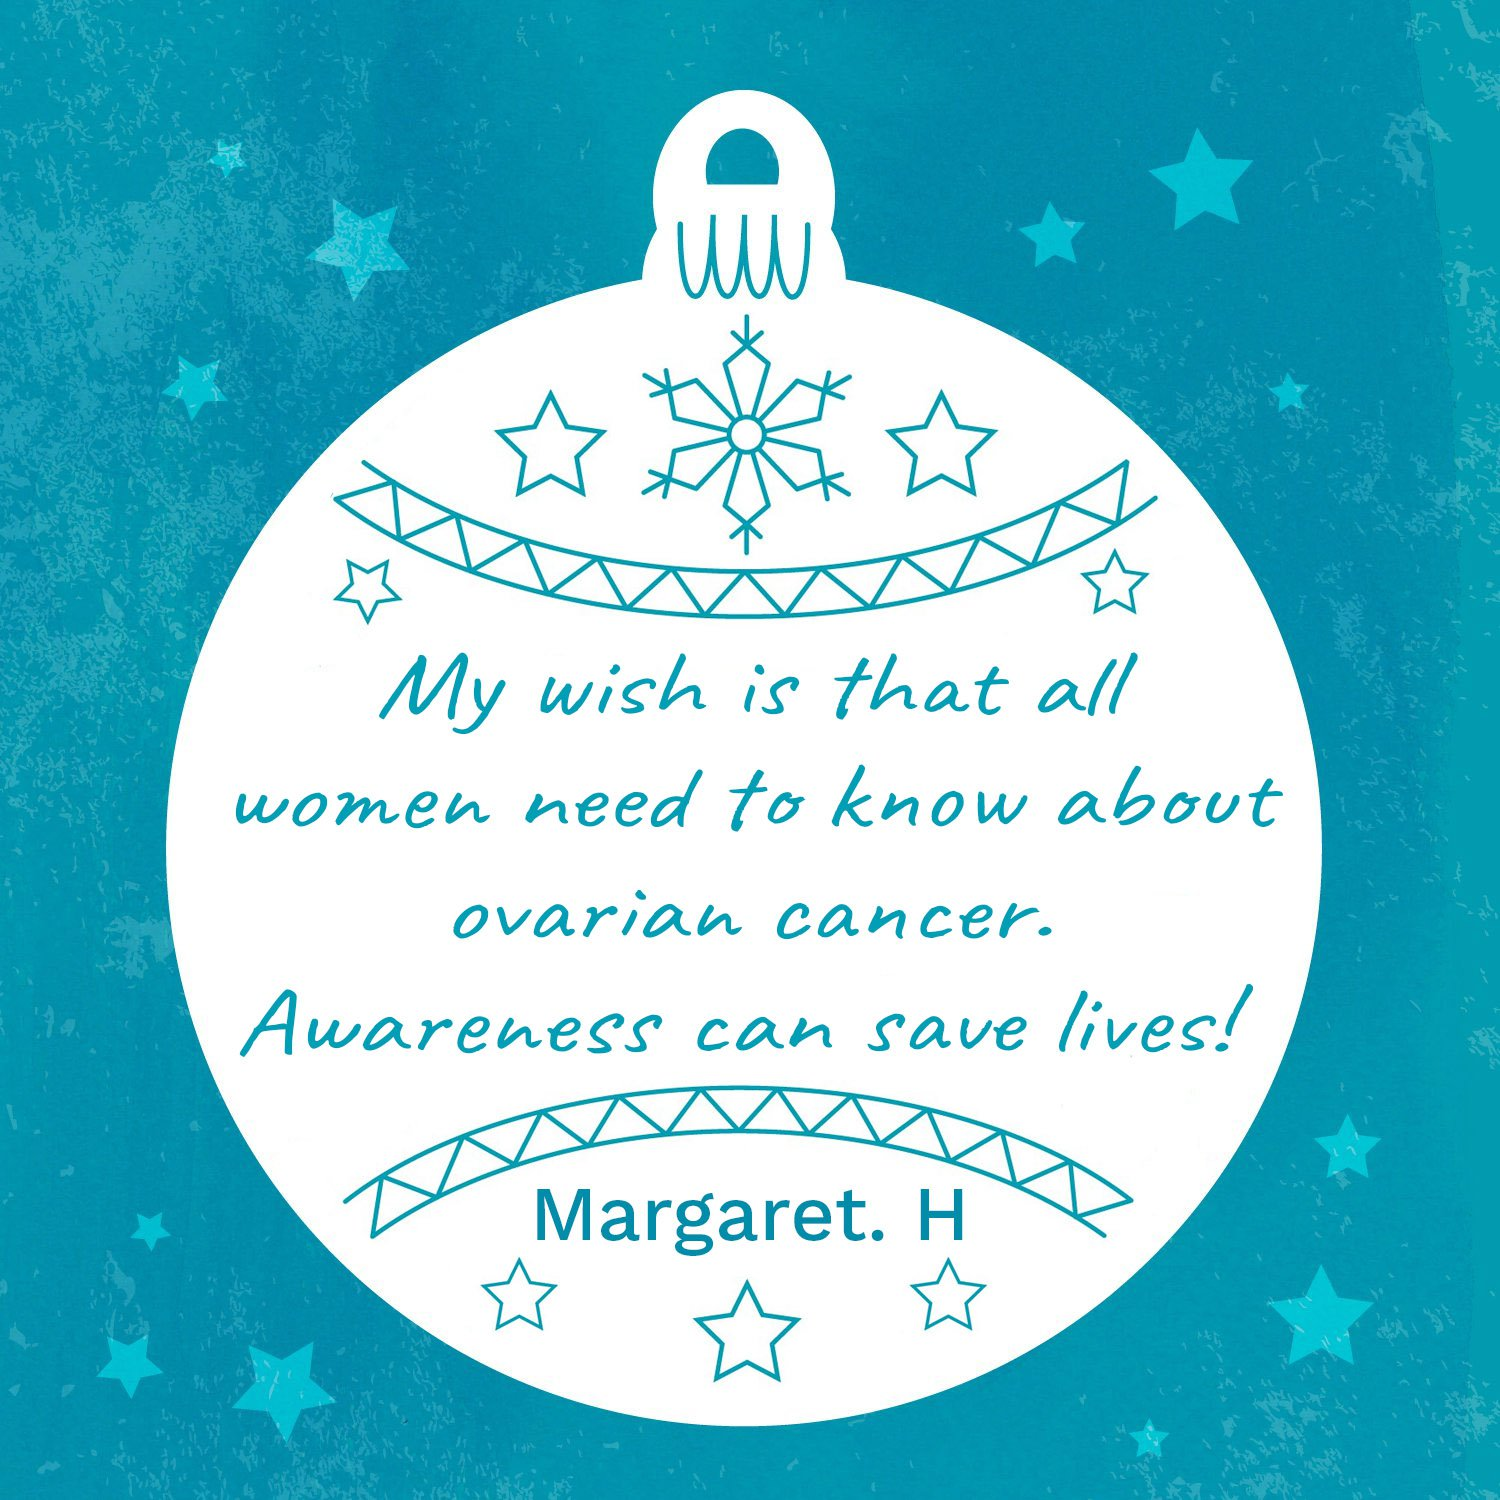 Margaret's wish for raising awareness of ovarian cancer.jpg